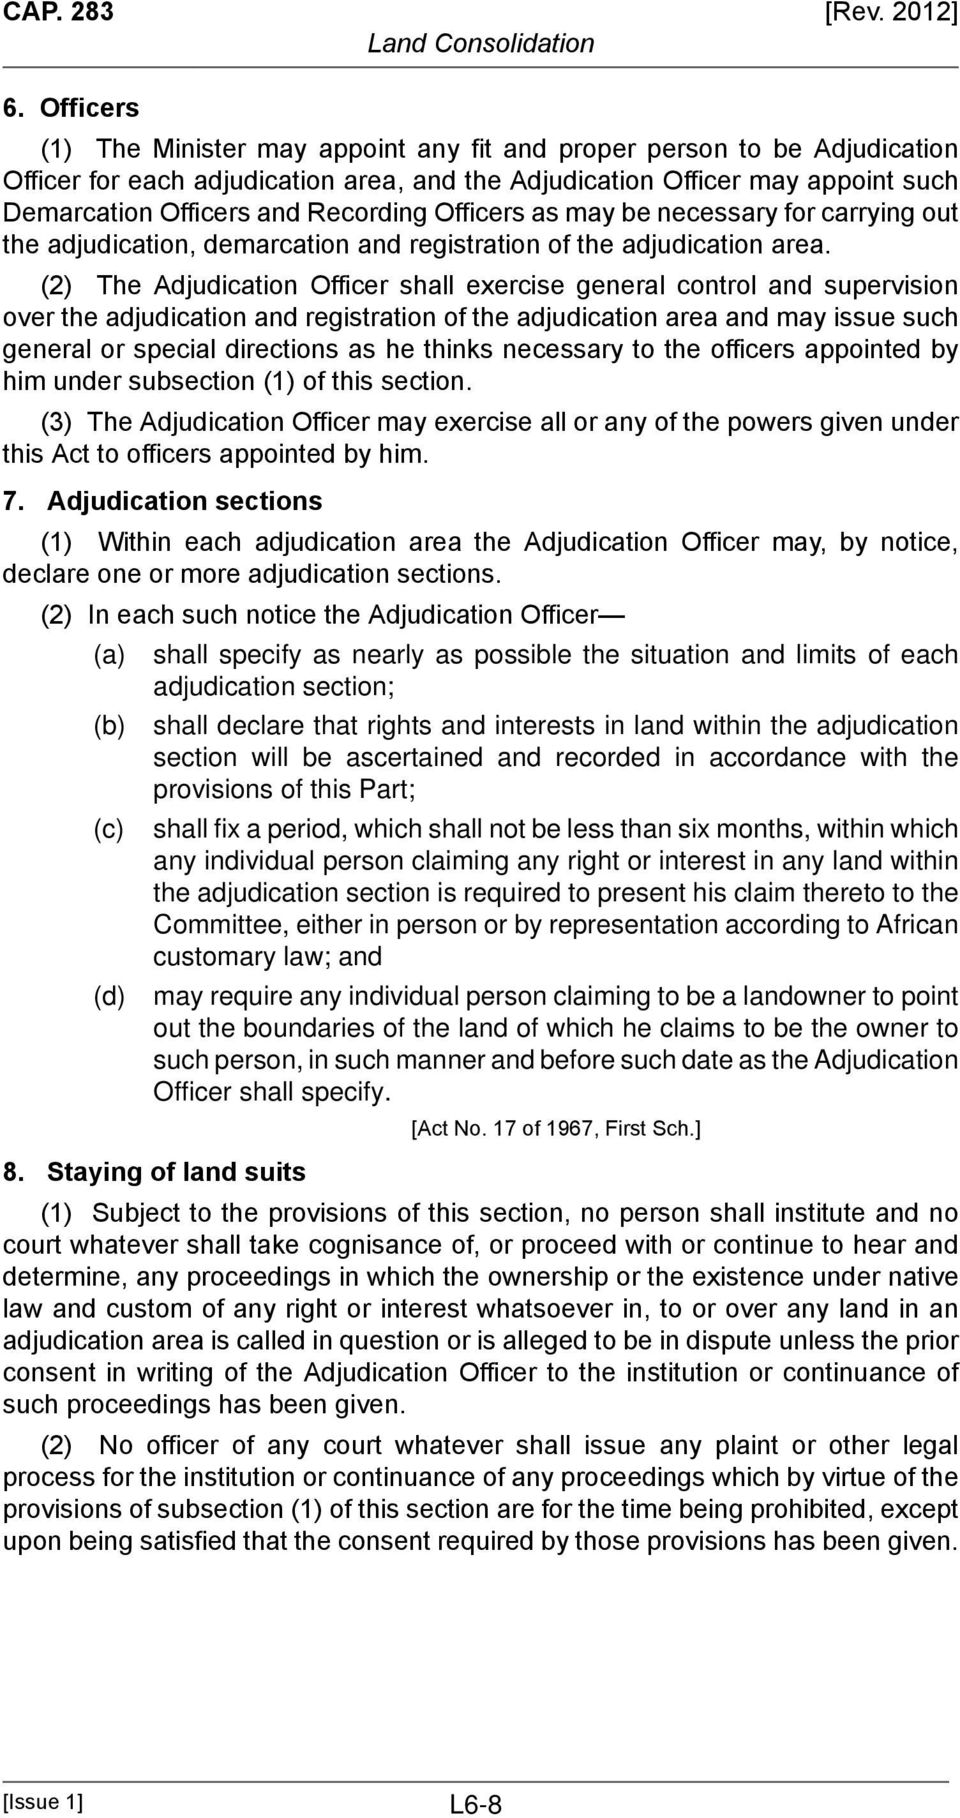 Officers as may be necessary for carrying out the adjudication, demarcation and registration of the adjudication area.